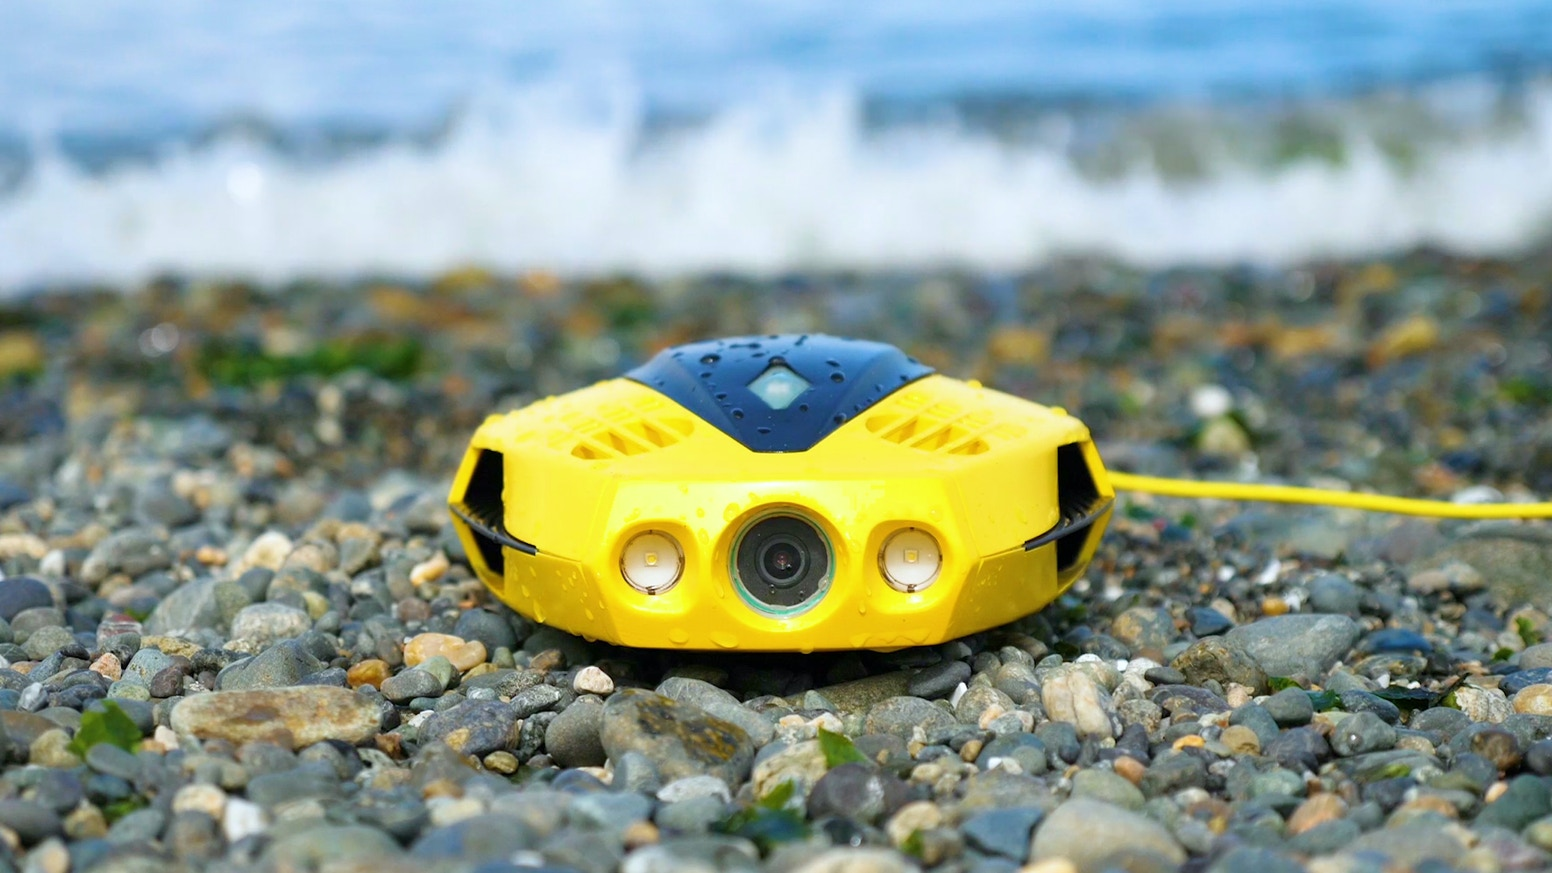 So small and so easy to use. Explore the waters below with this incredibly portable and affordable underwater drone.